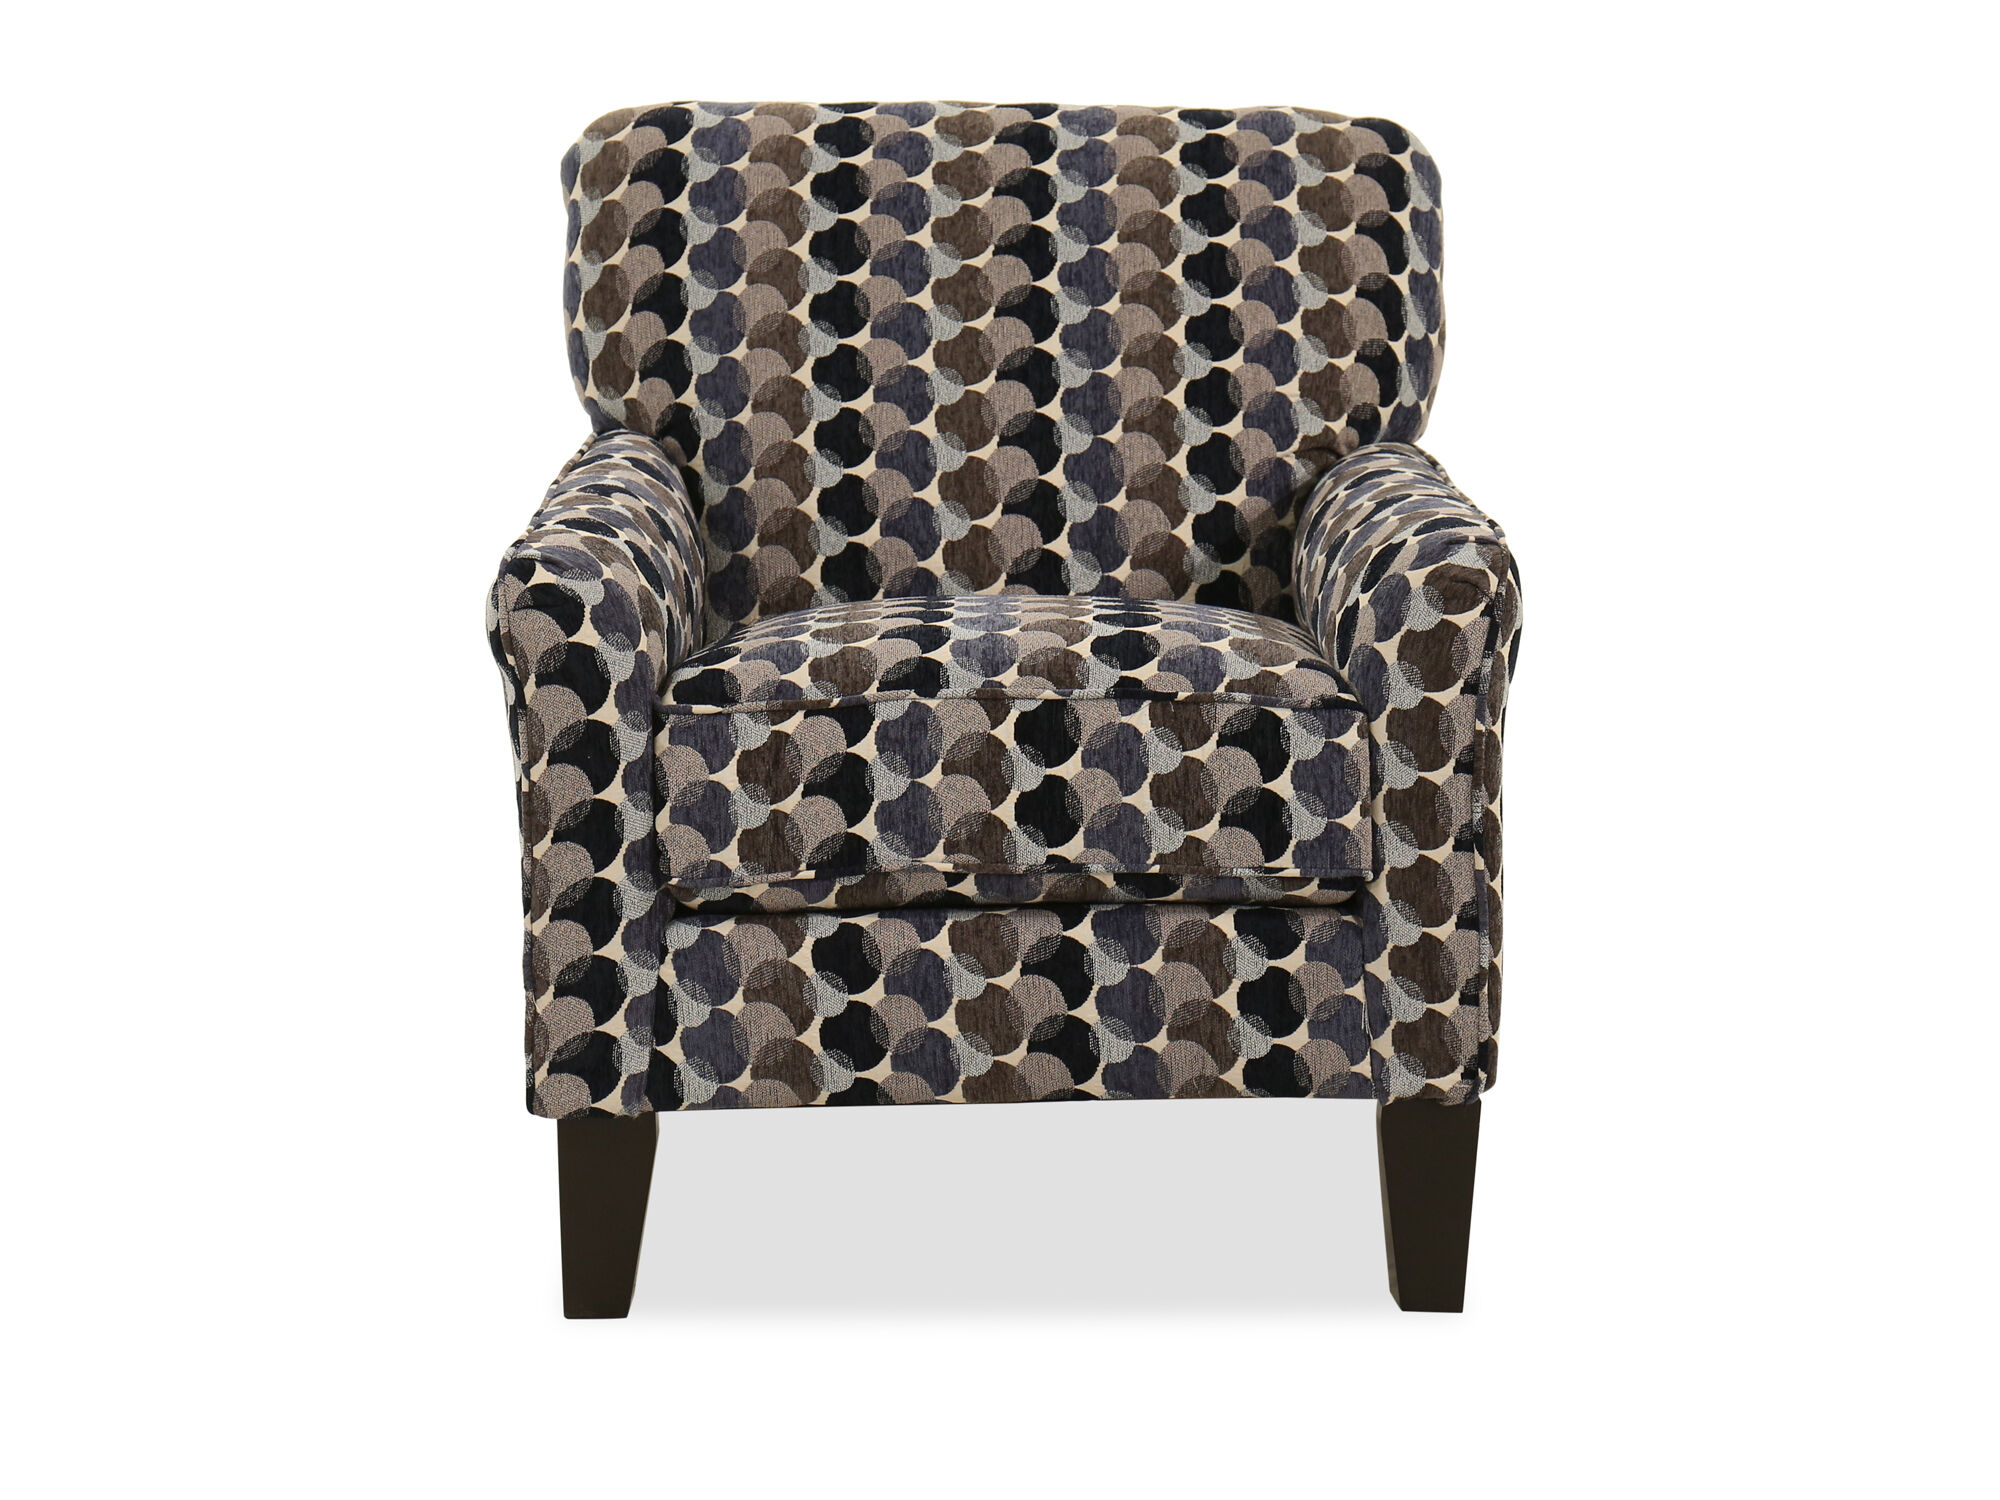 30 Bubble Patterned Transitional Accent Chair In Multi